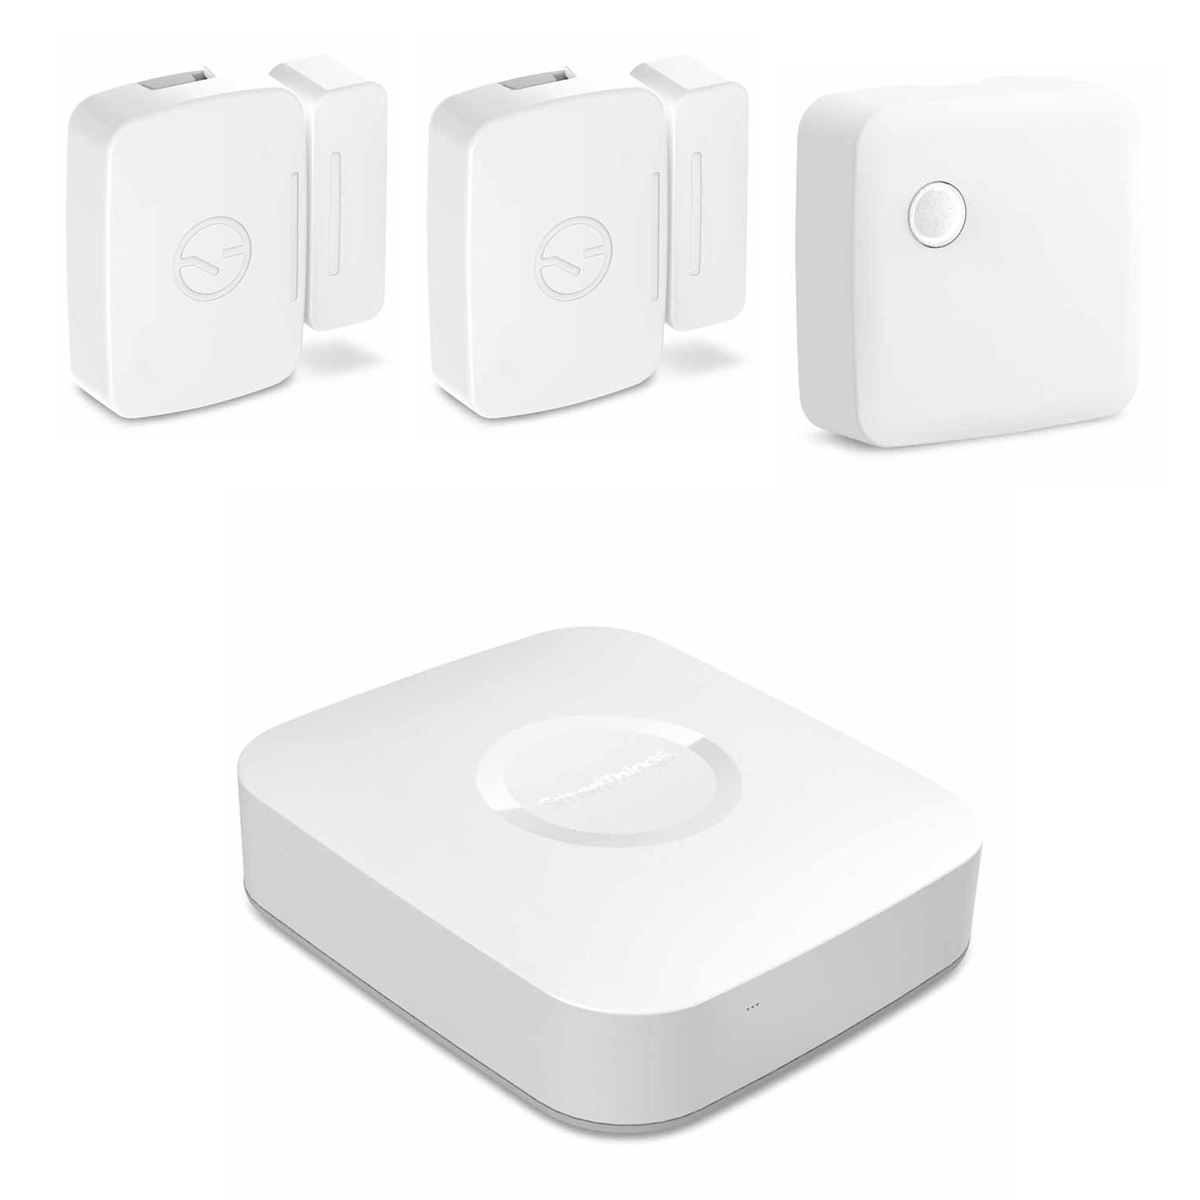 Samsung SmartThings Monitoring and Security Starter Bundle with Multipurpose Sensors, Motion Sensor, and Hub